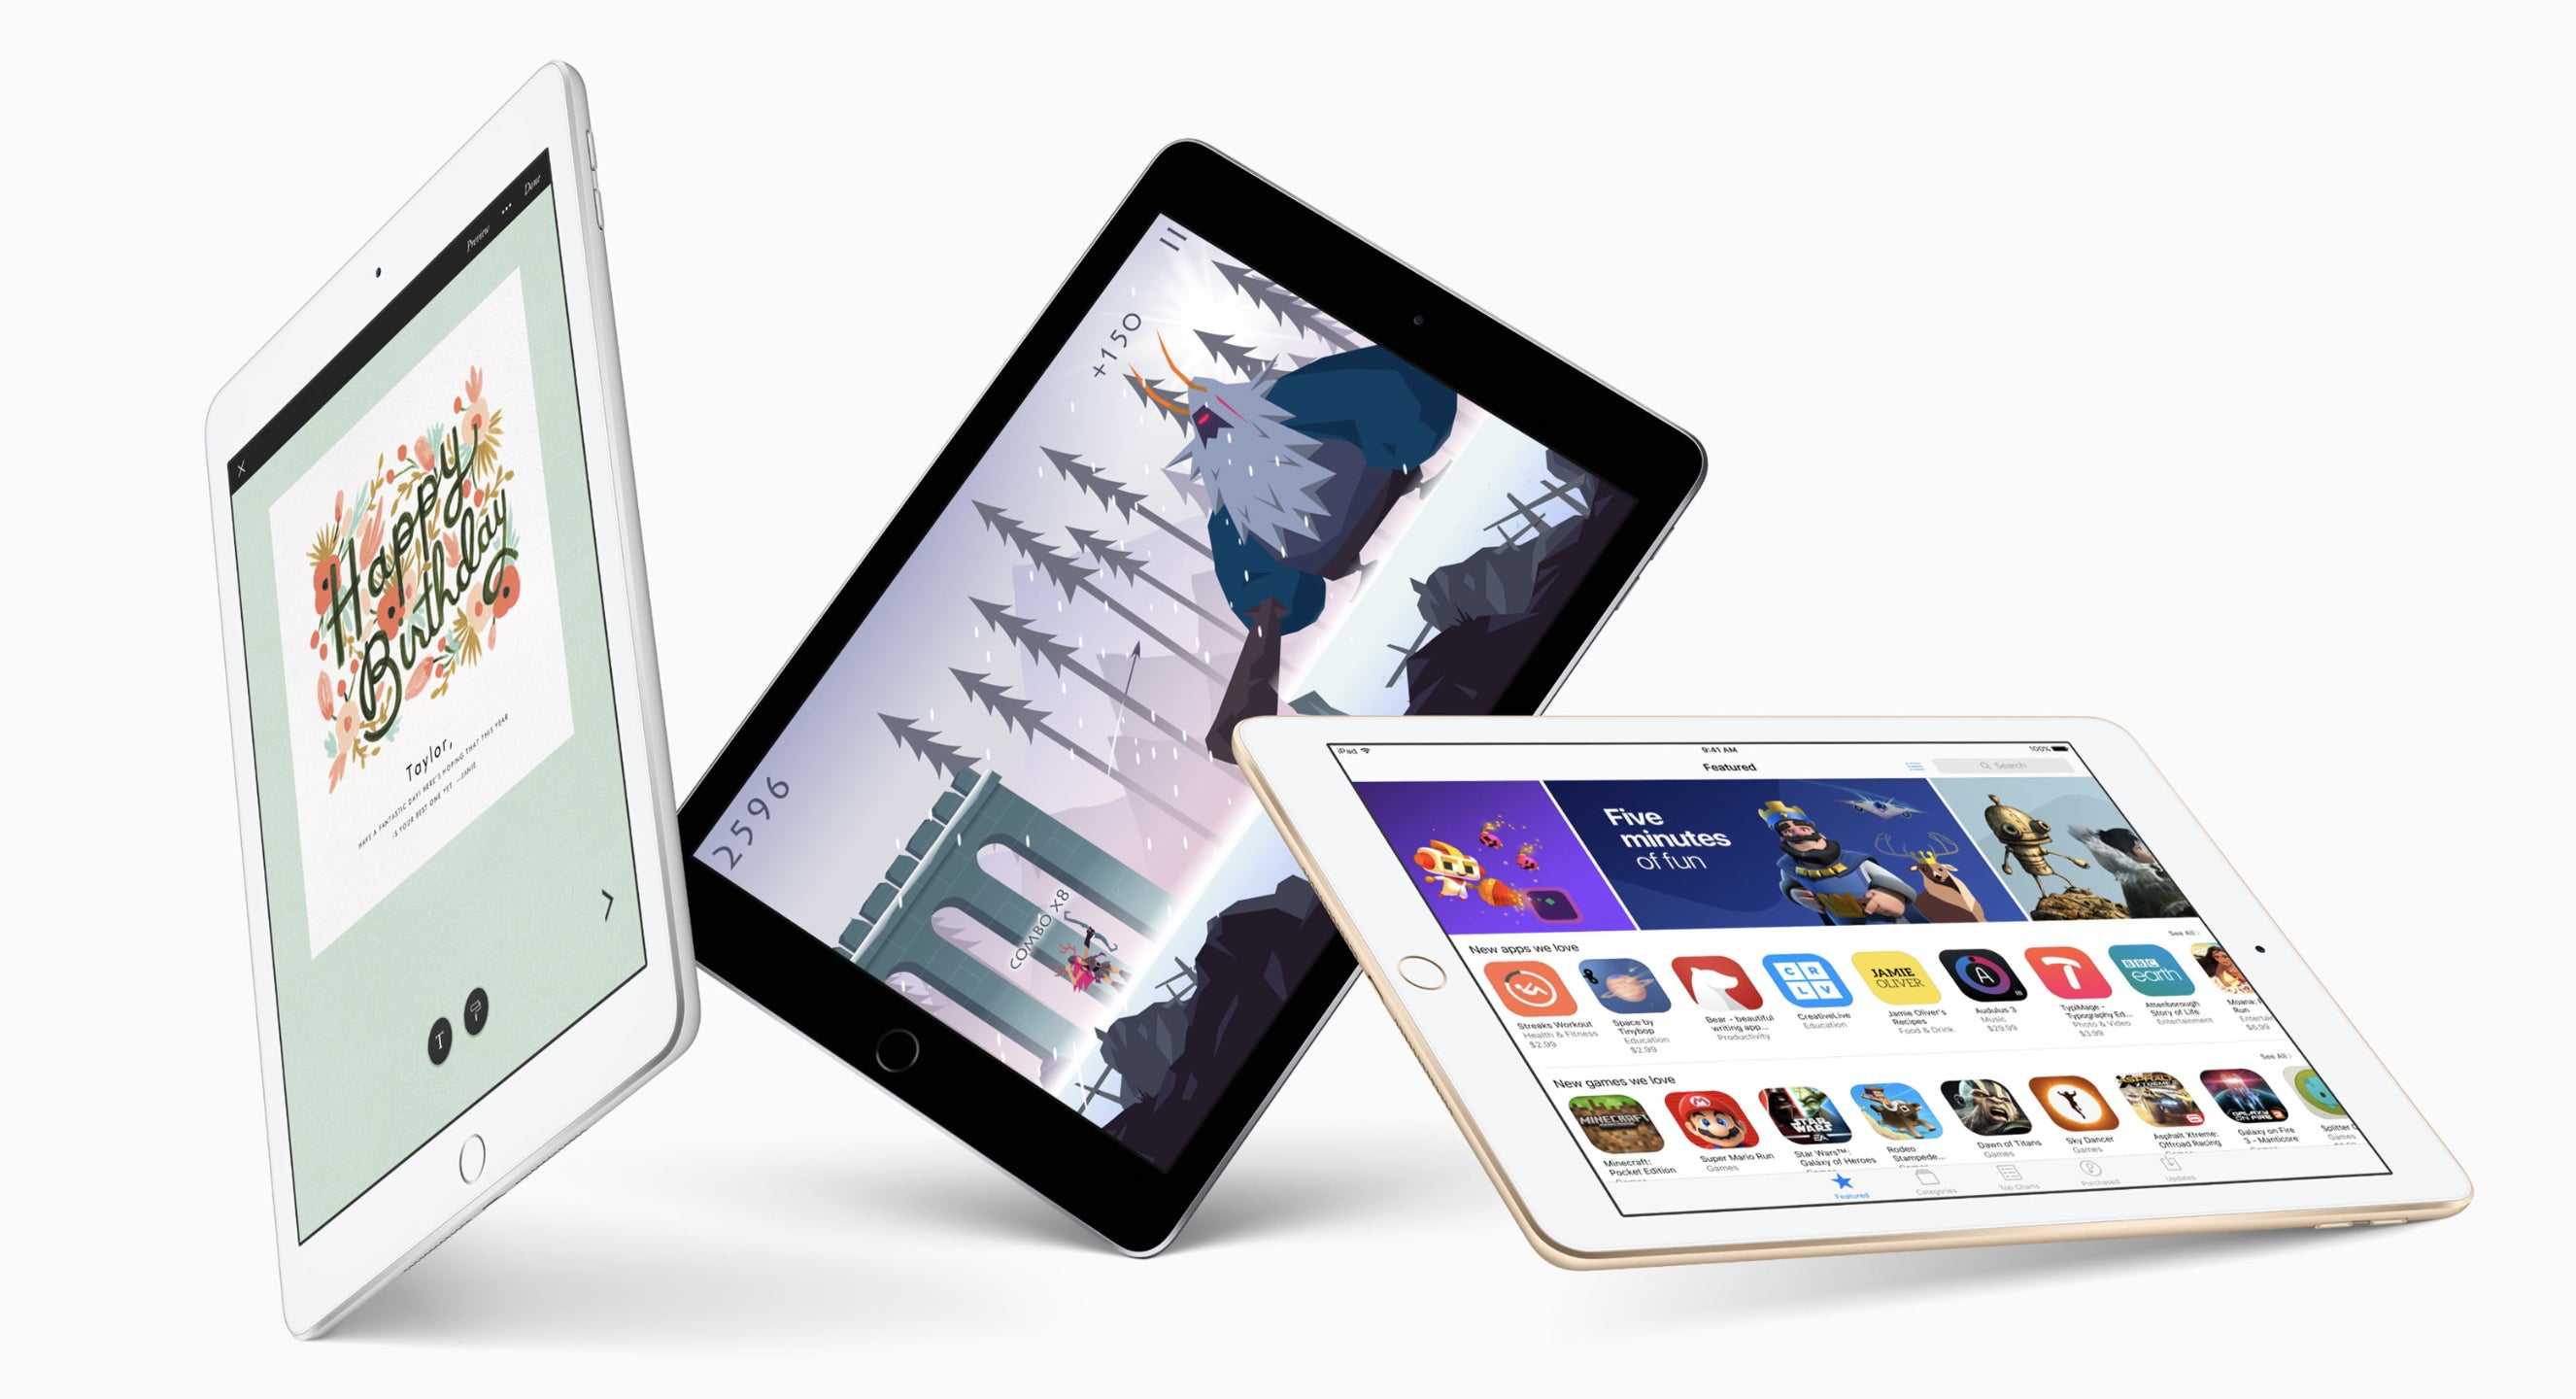 97 Inch Ipad Deals Costco And Best Buy Drop Prices By 30 14 Apple Mini Retina 32gb Wifi Cell Silver Macworld